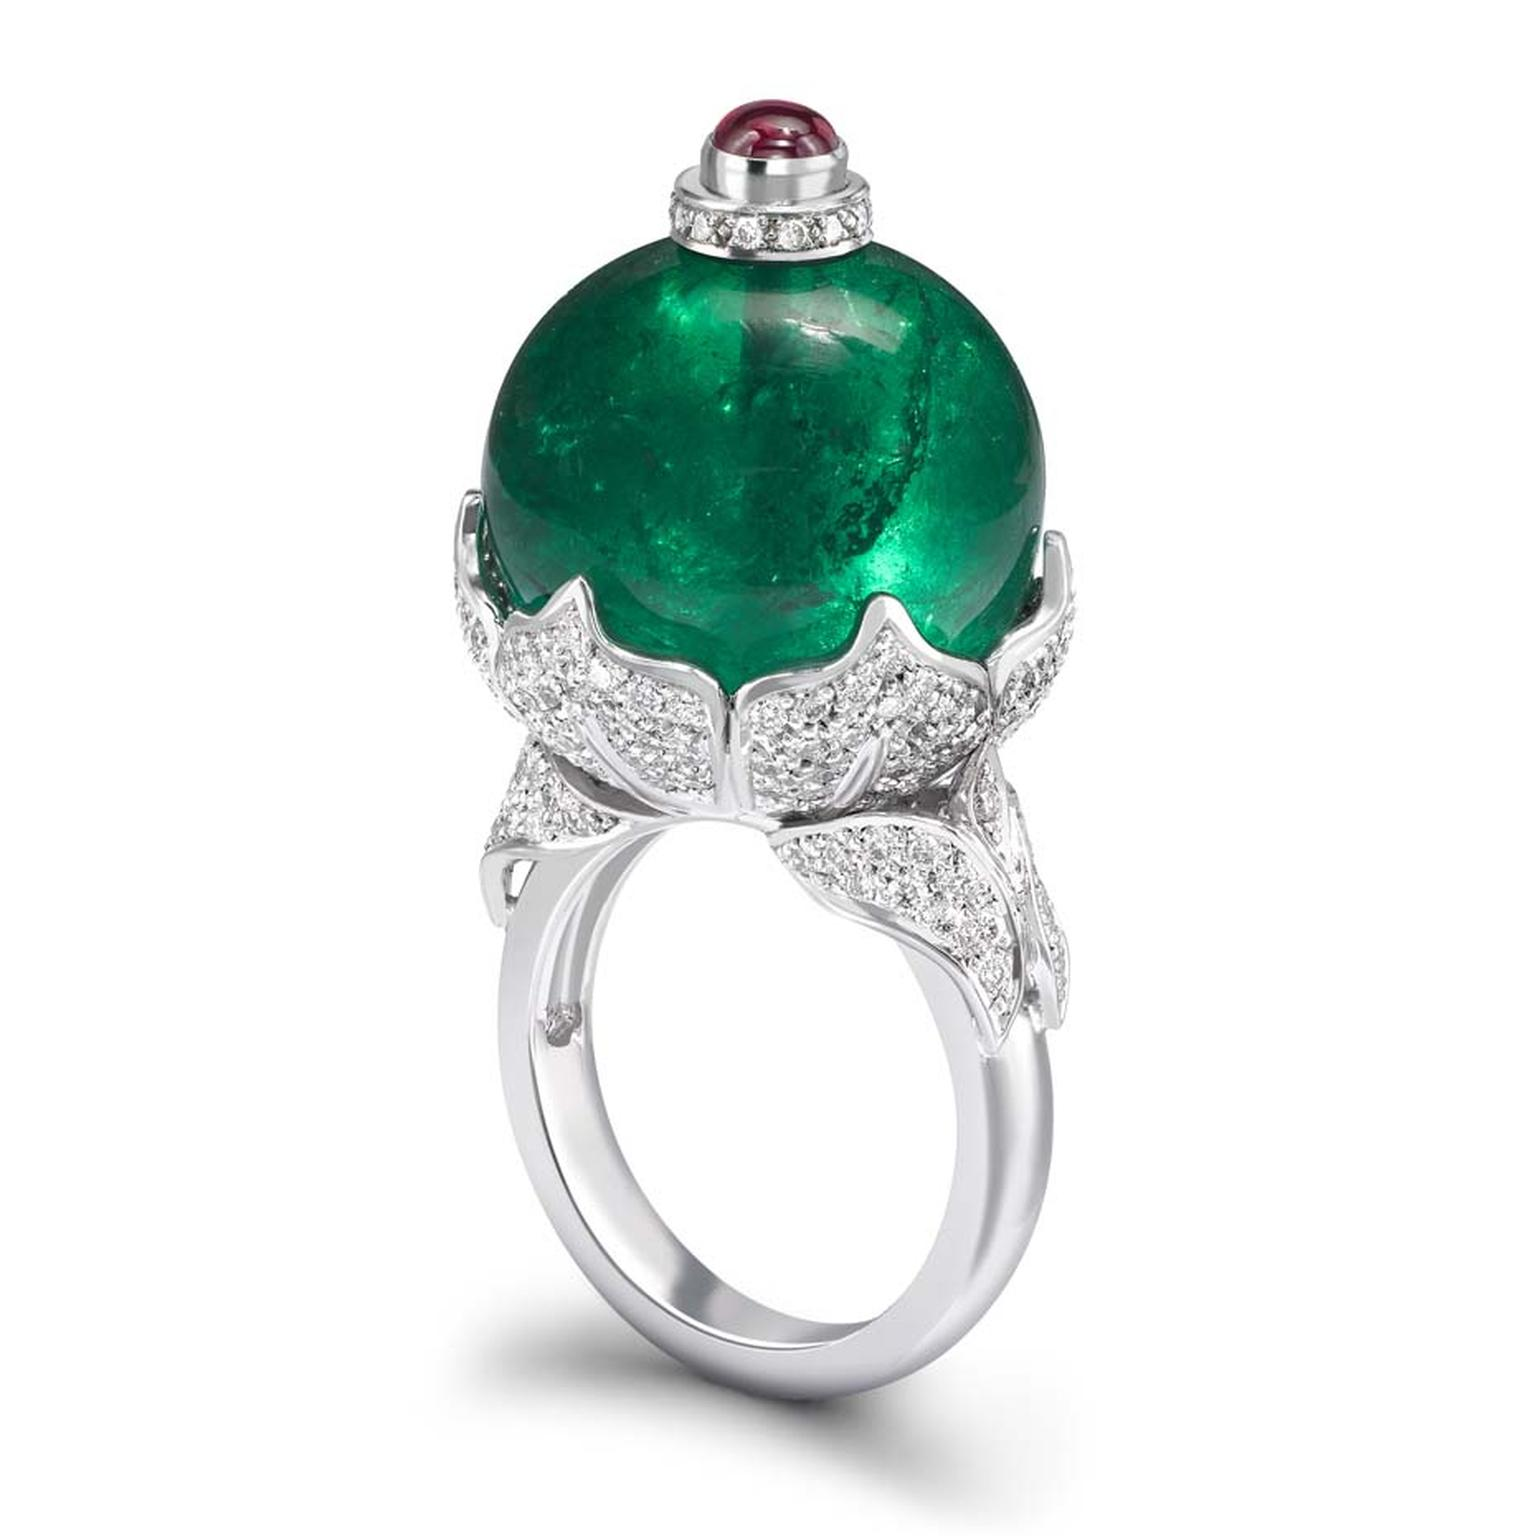 Theo Fennell emerald ring in white gold, set with a 38.70ct Gemfields emerald bead surrounded by pavé diamonds and topped with a ruby.